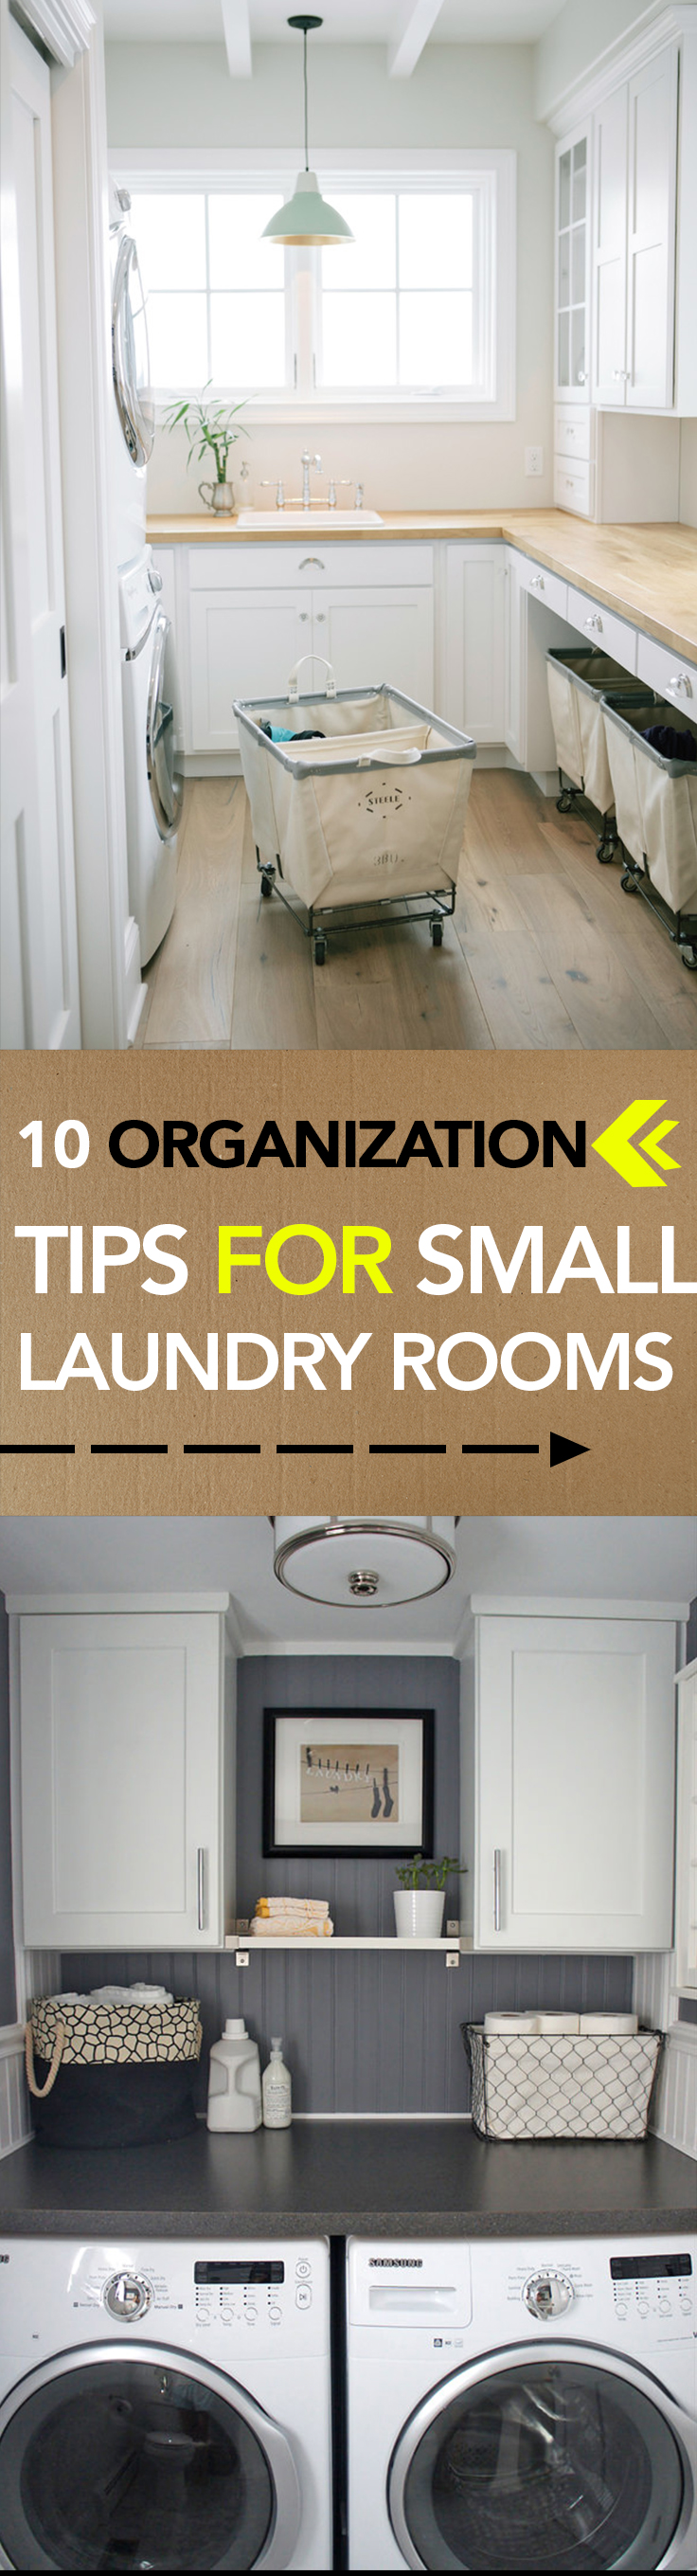 Small Space Organization 10 Organization Tips For Small Laundry Rooms